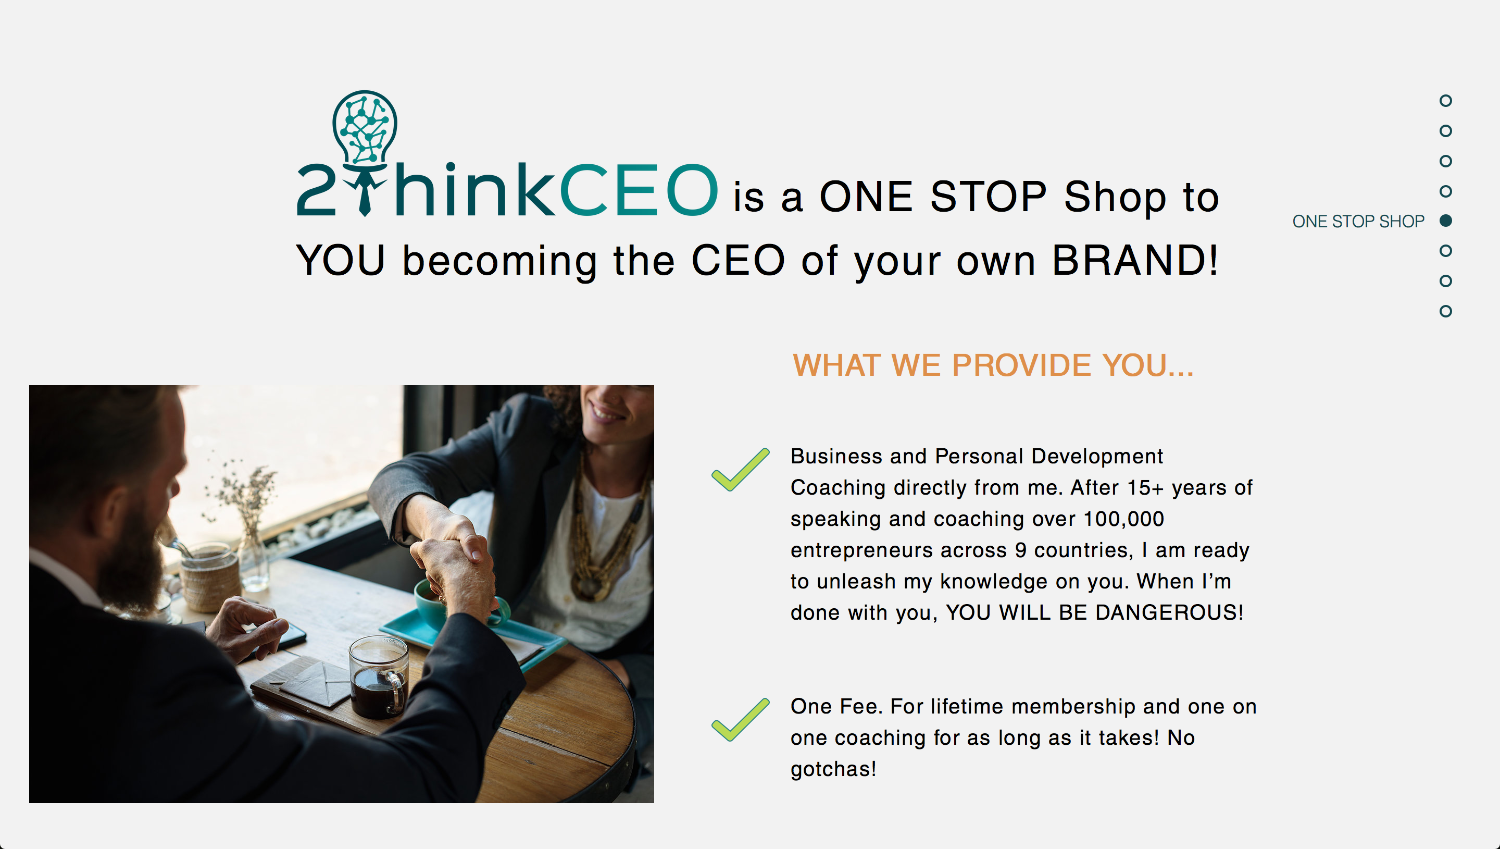 2ThinkCEO